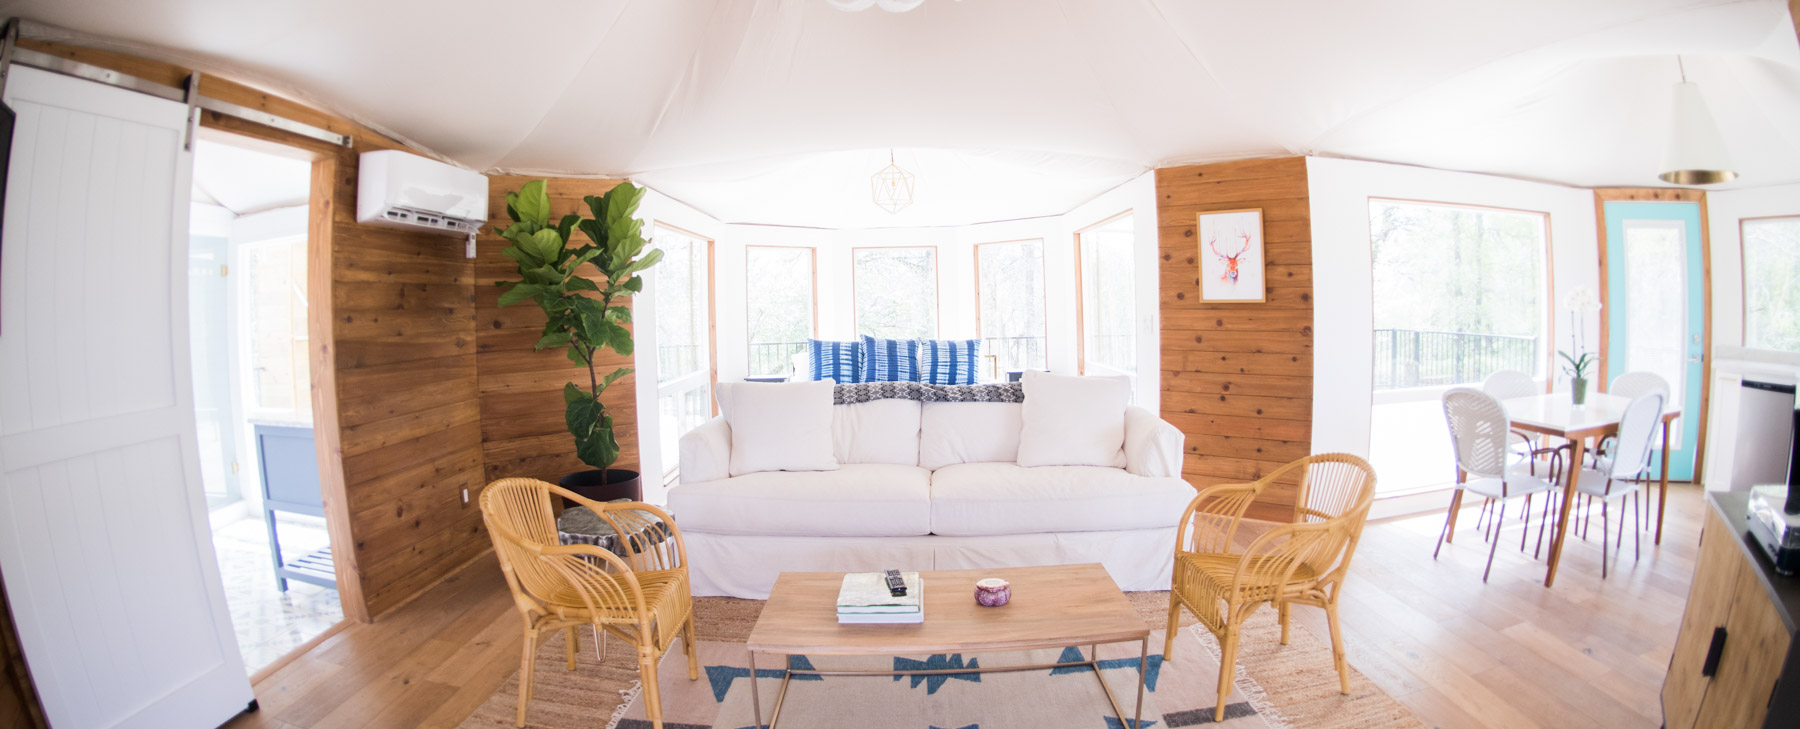 Wahwahtaysee Resort In Texas, United States   Glamping com